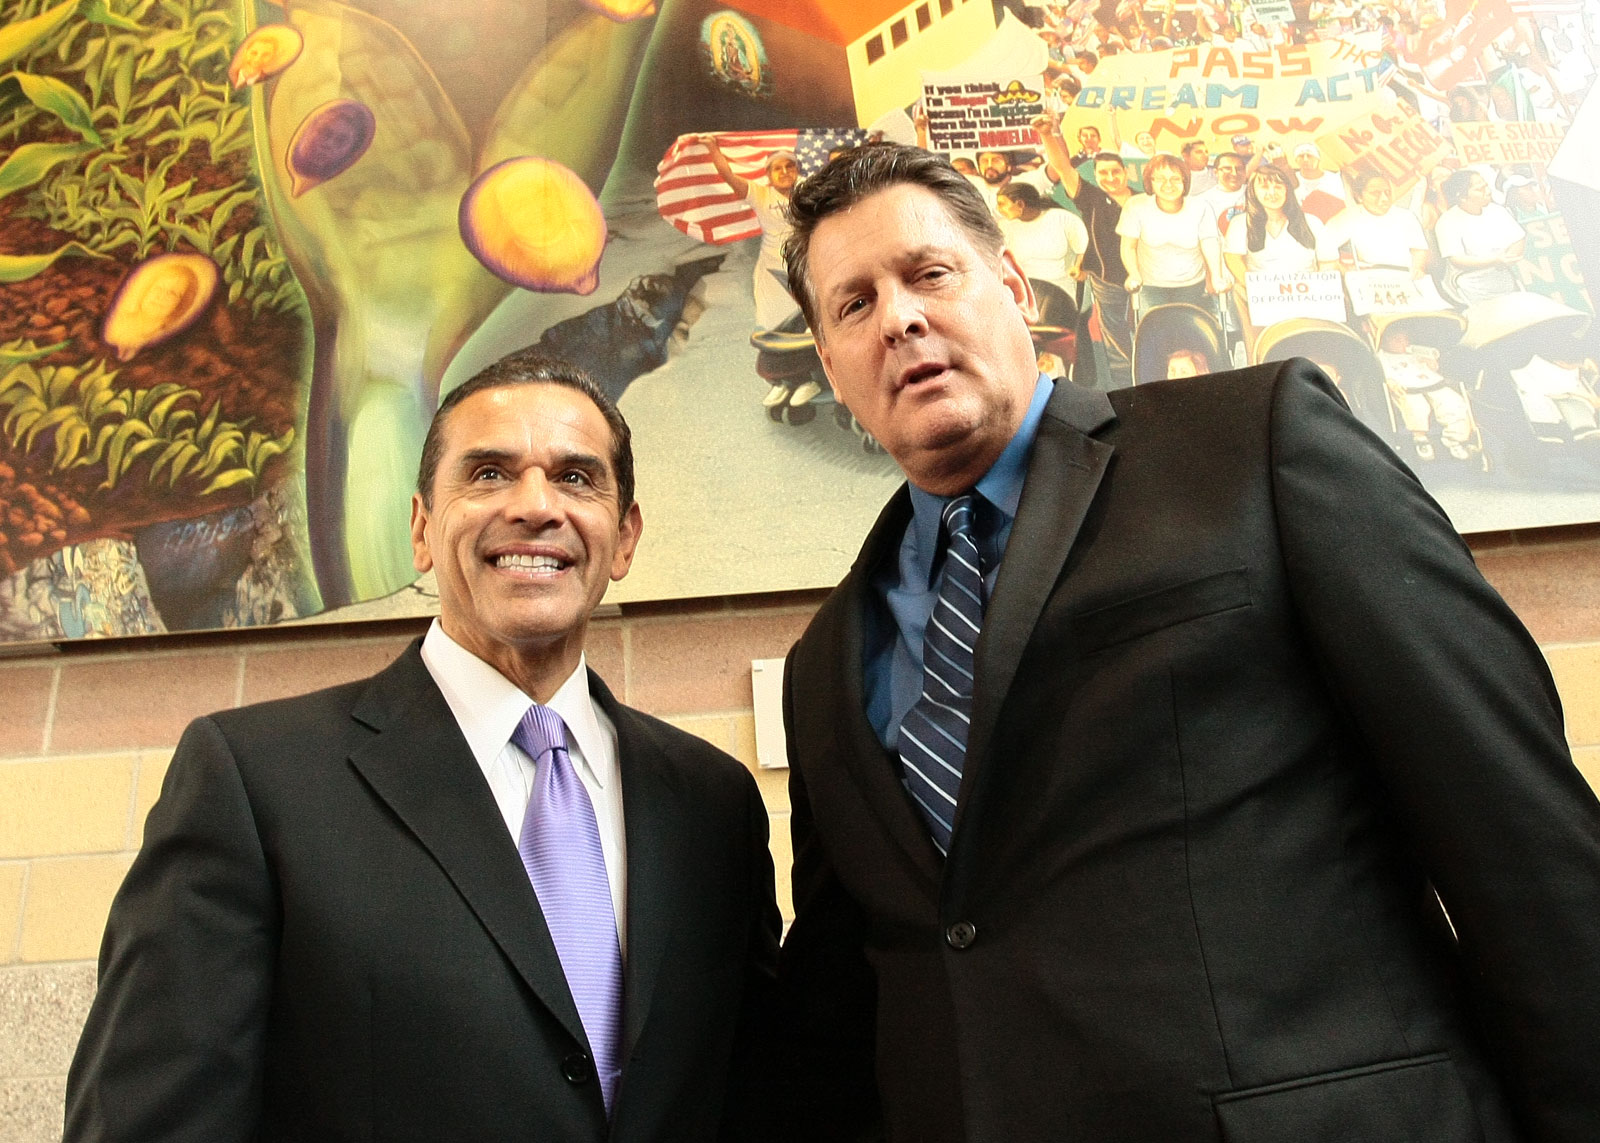 With former Los Angeles Mayor Antonio Villaraigosa